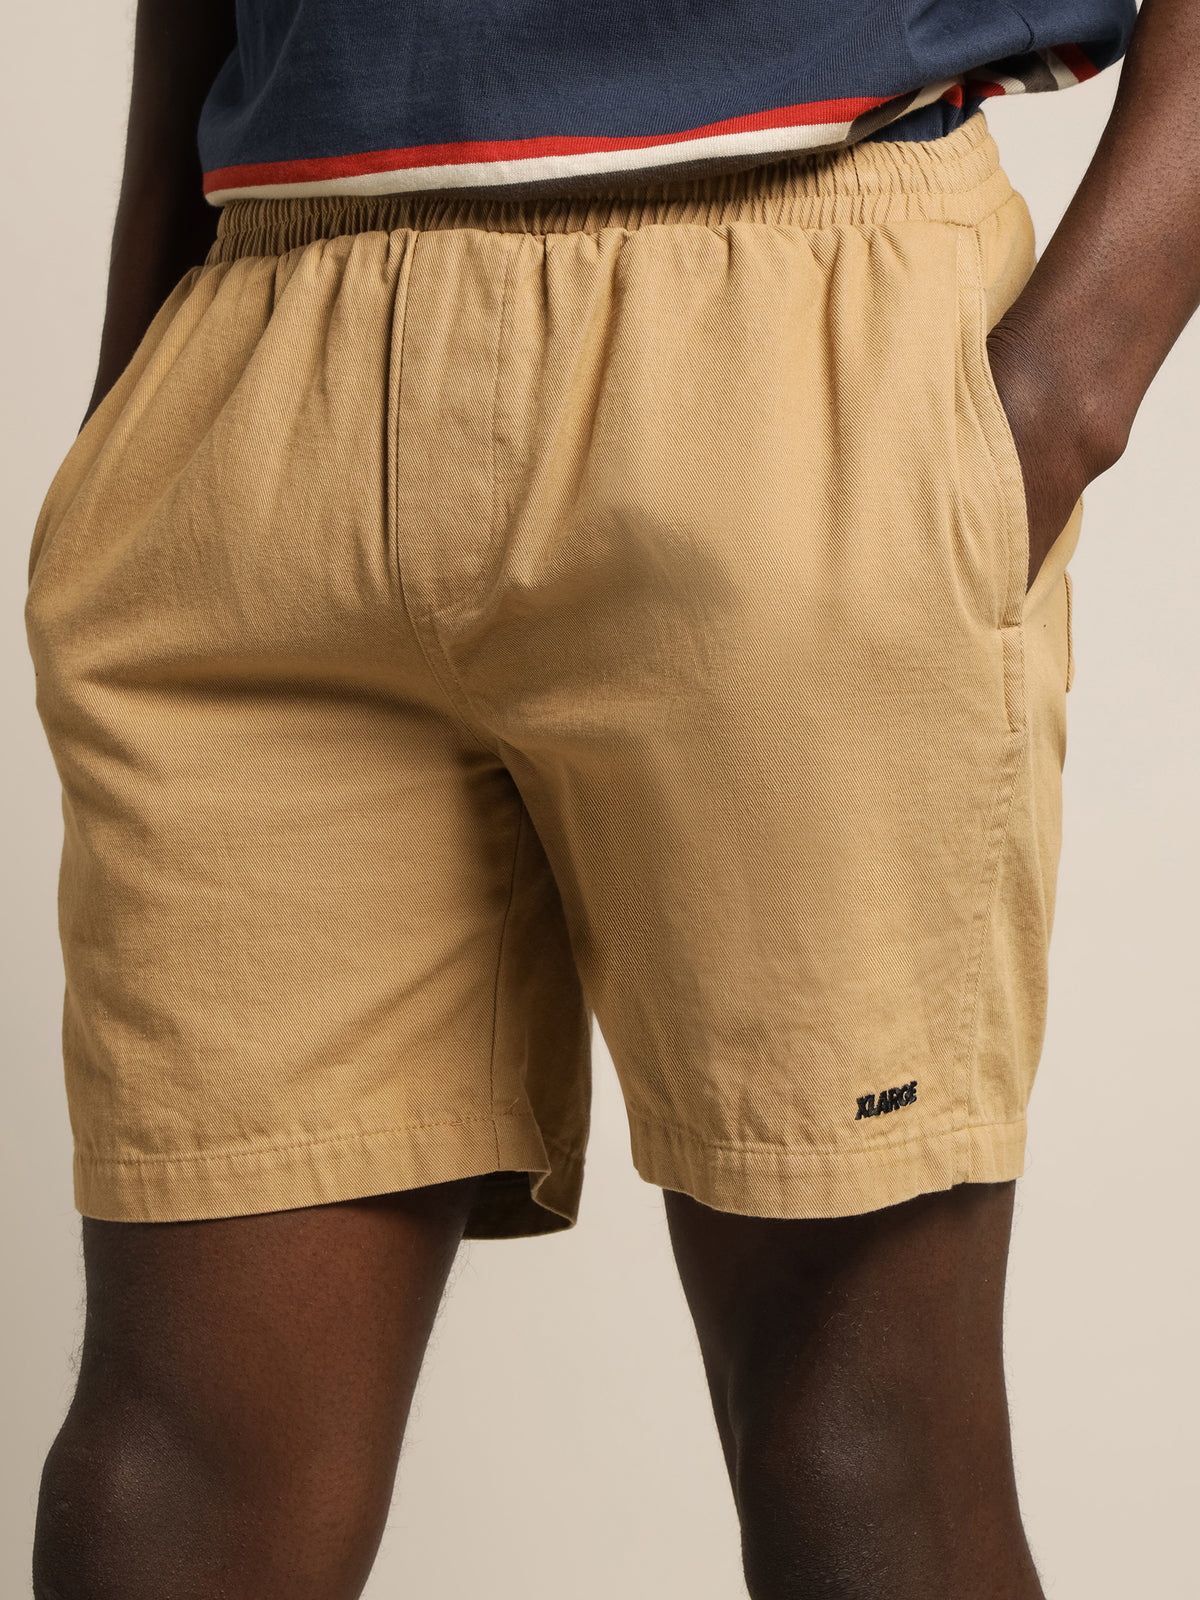 LA 91 Shorts in Khaki